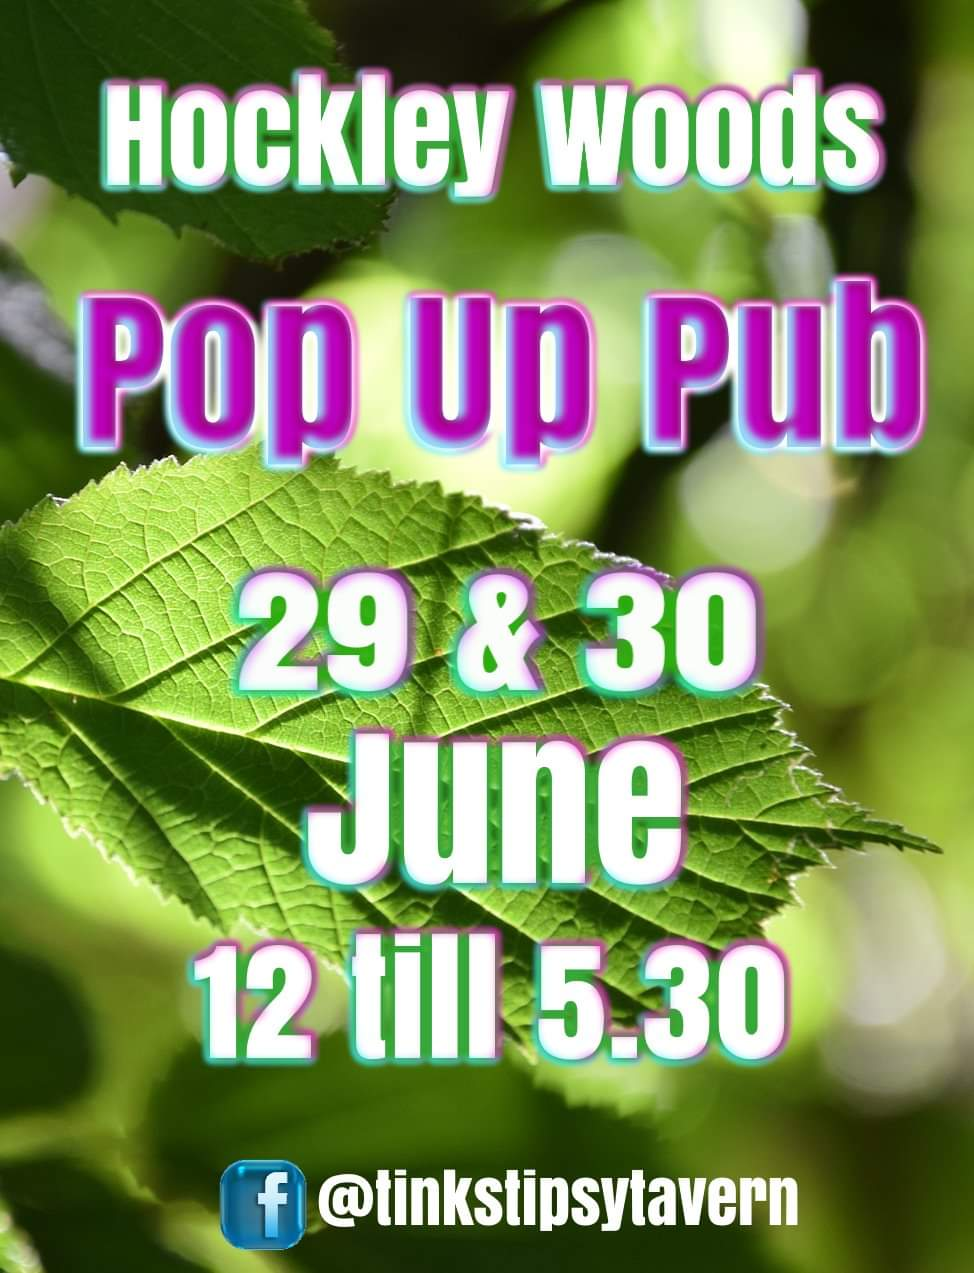 Hockley Woods Pop Up Pub